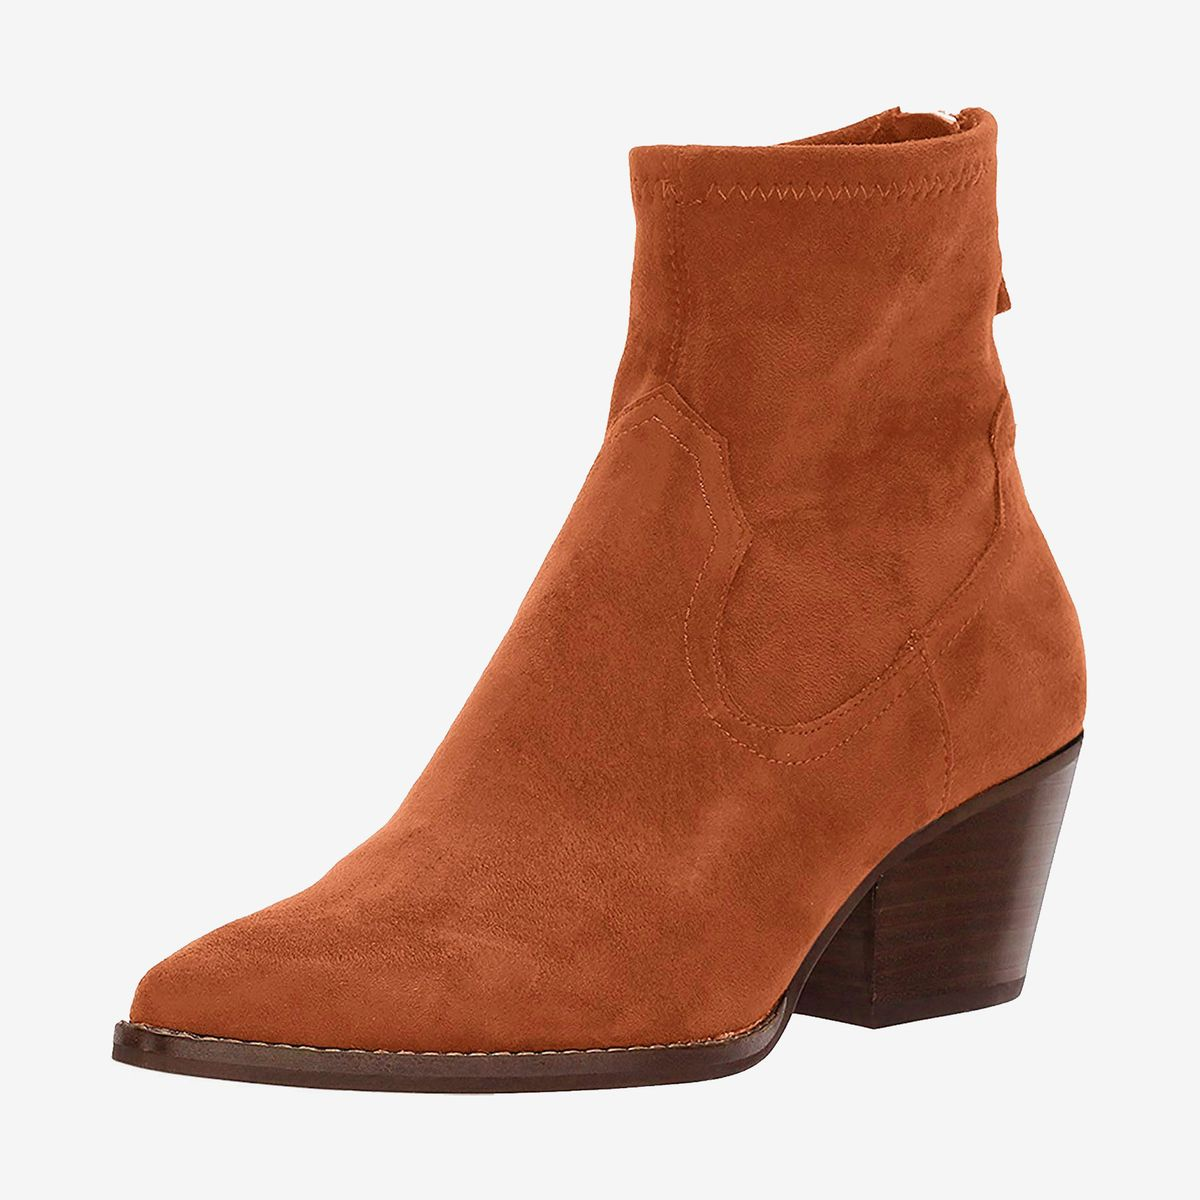 23 Best Women's Ankle Boots 2020   The